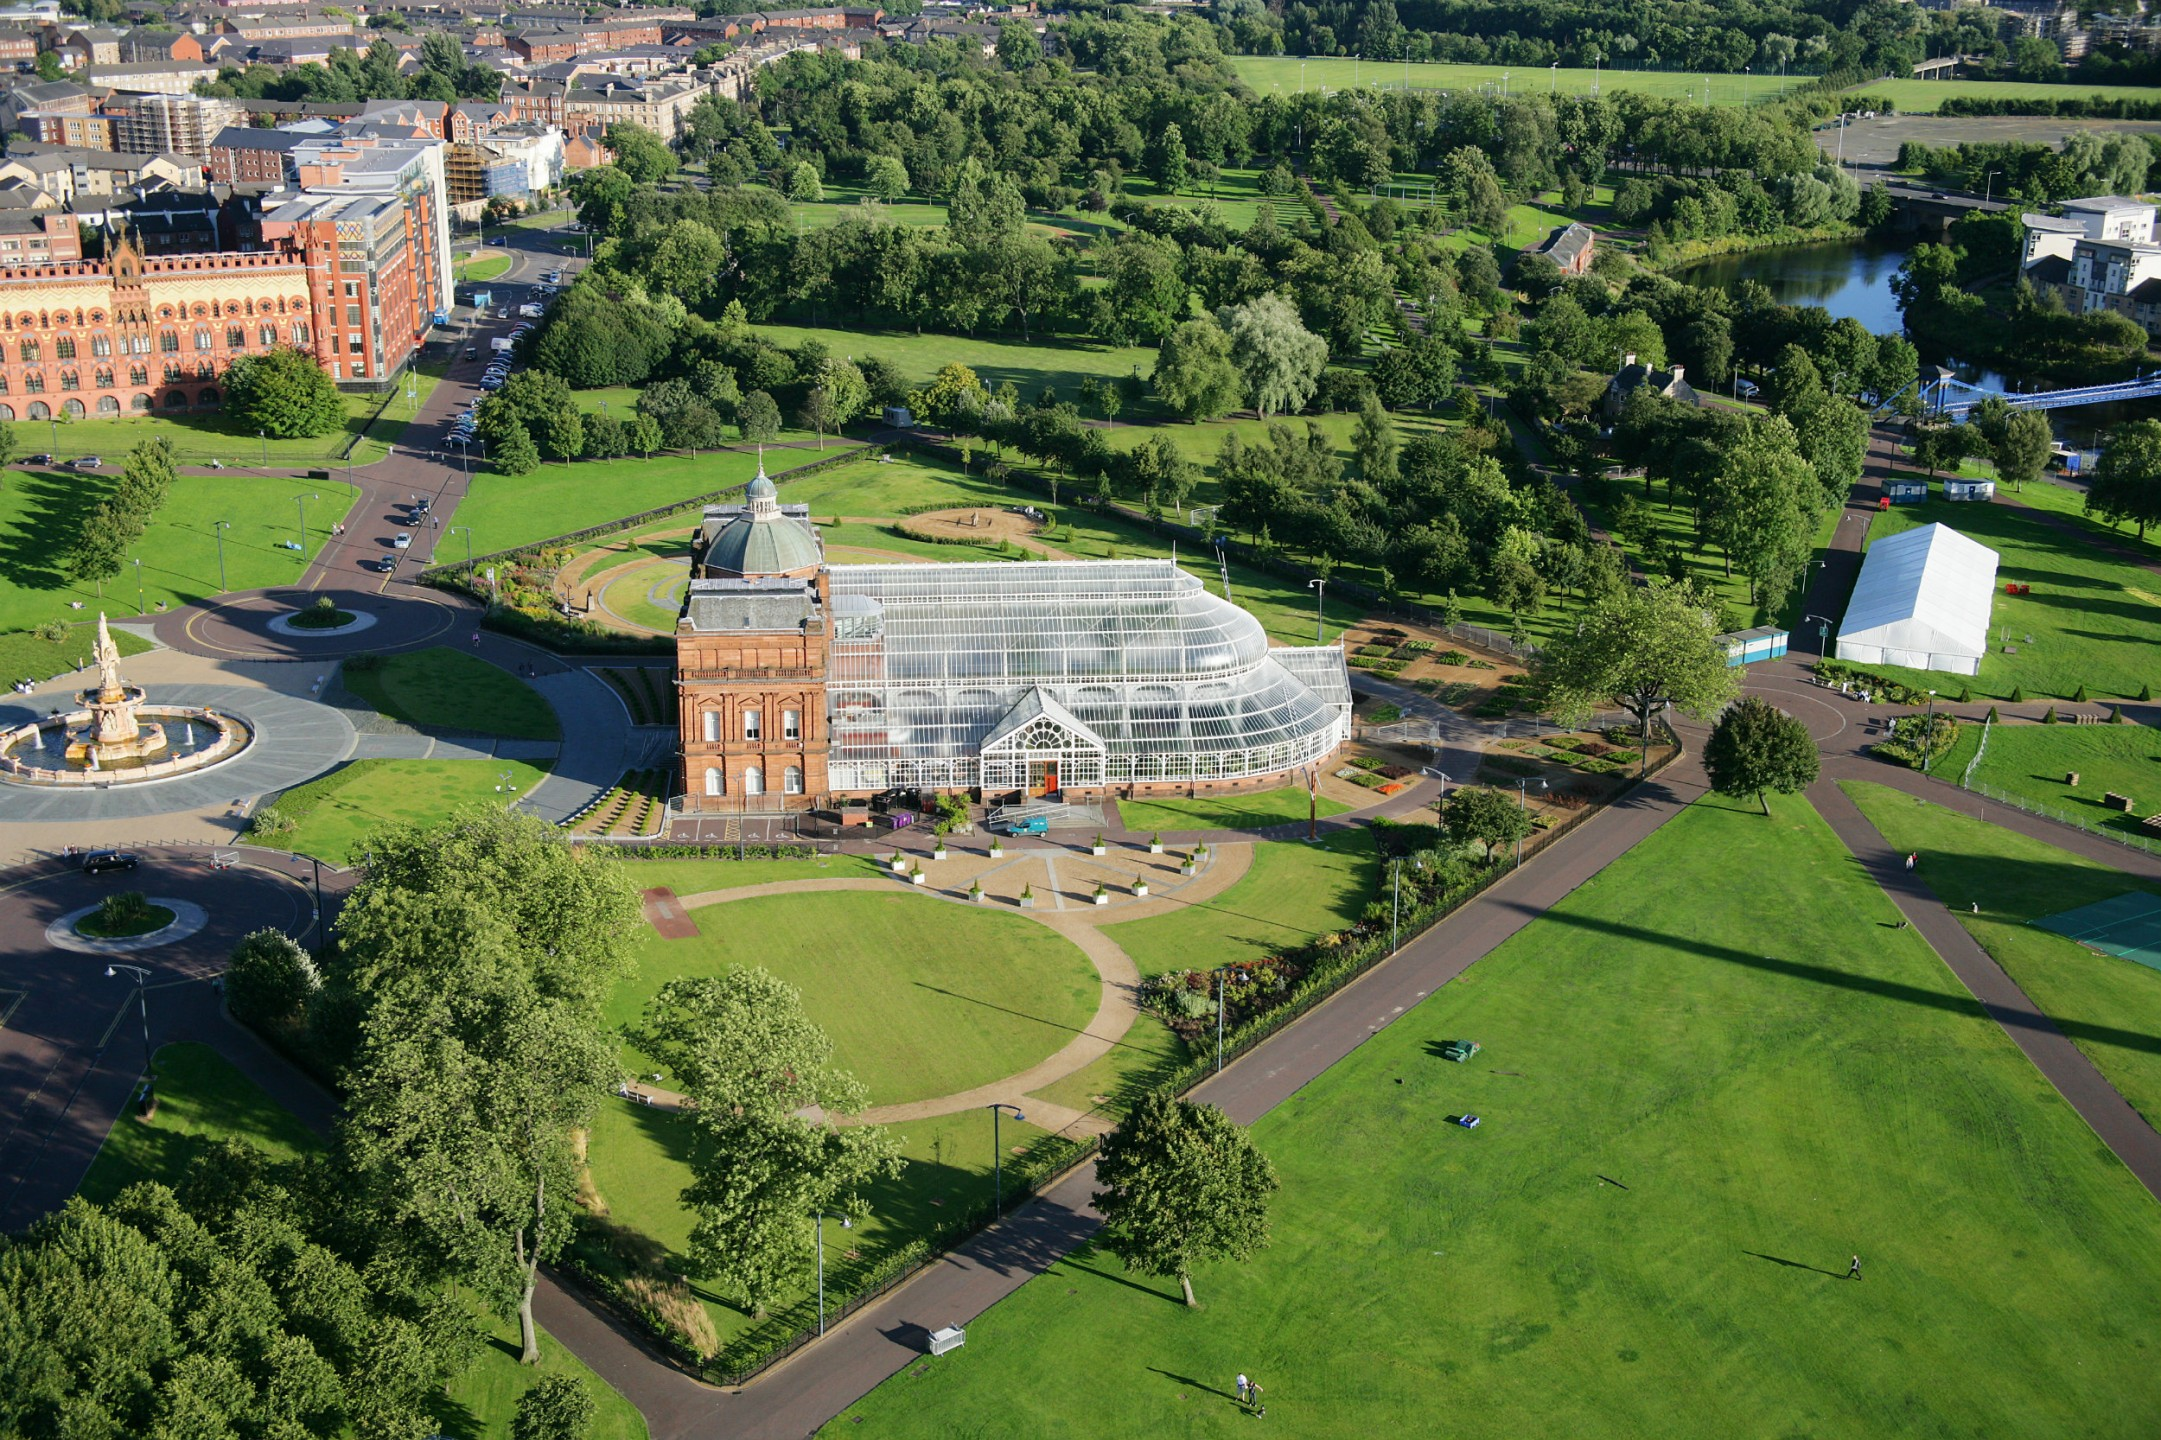 Glasgow Green Glasgow, New music festival 'May West' to be staged on Glasgow Green